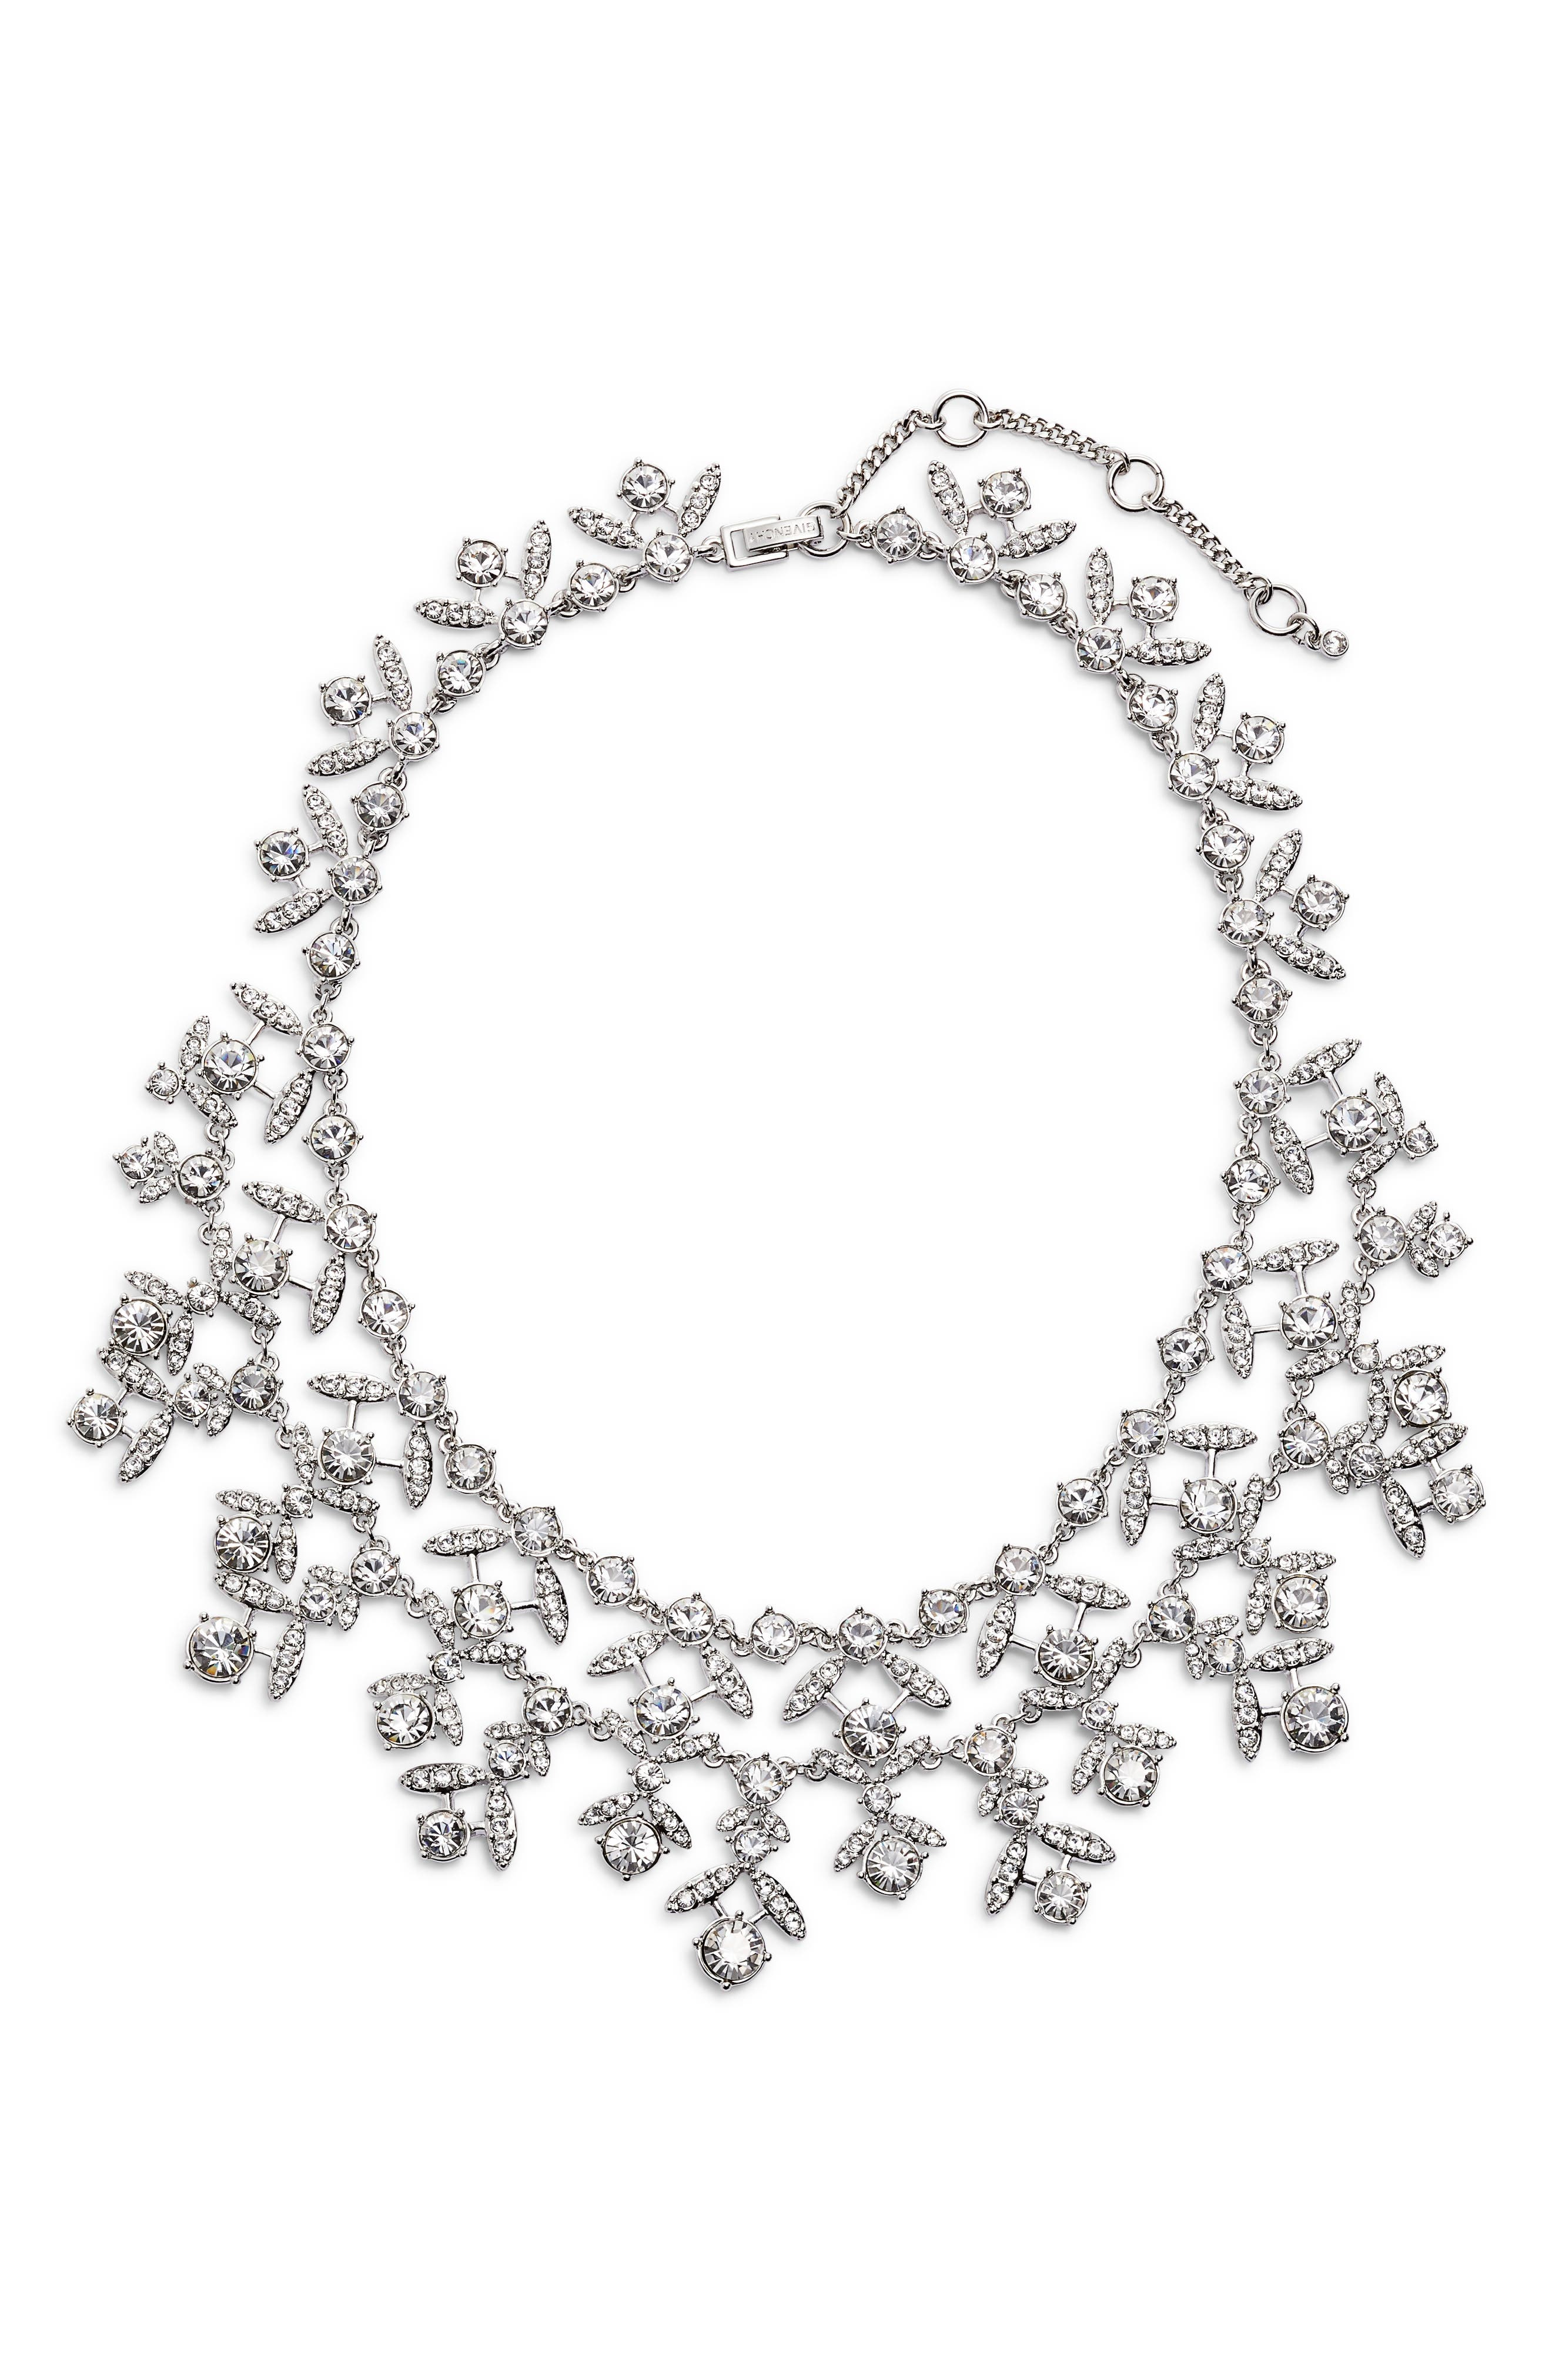 Crystal Collar Necklace,                             Main thumbnail 1, color,                             Silver/ Crystal